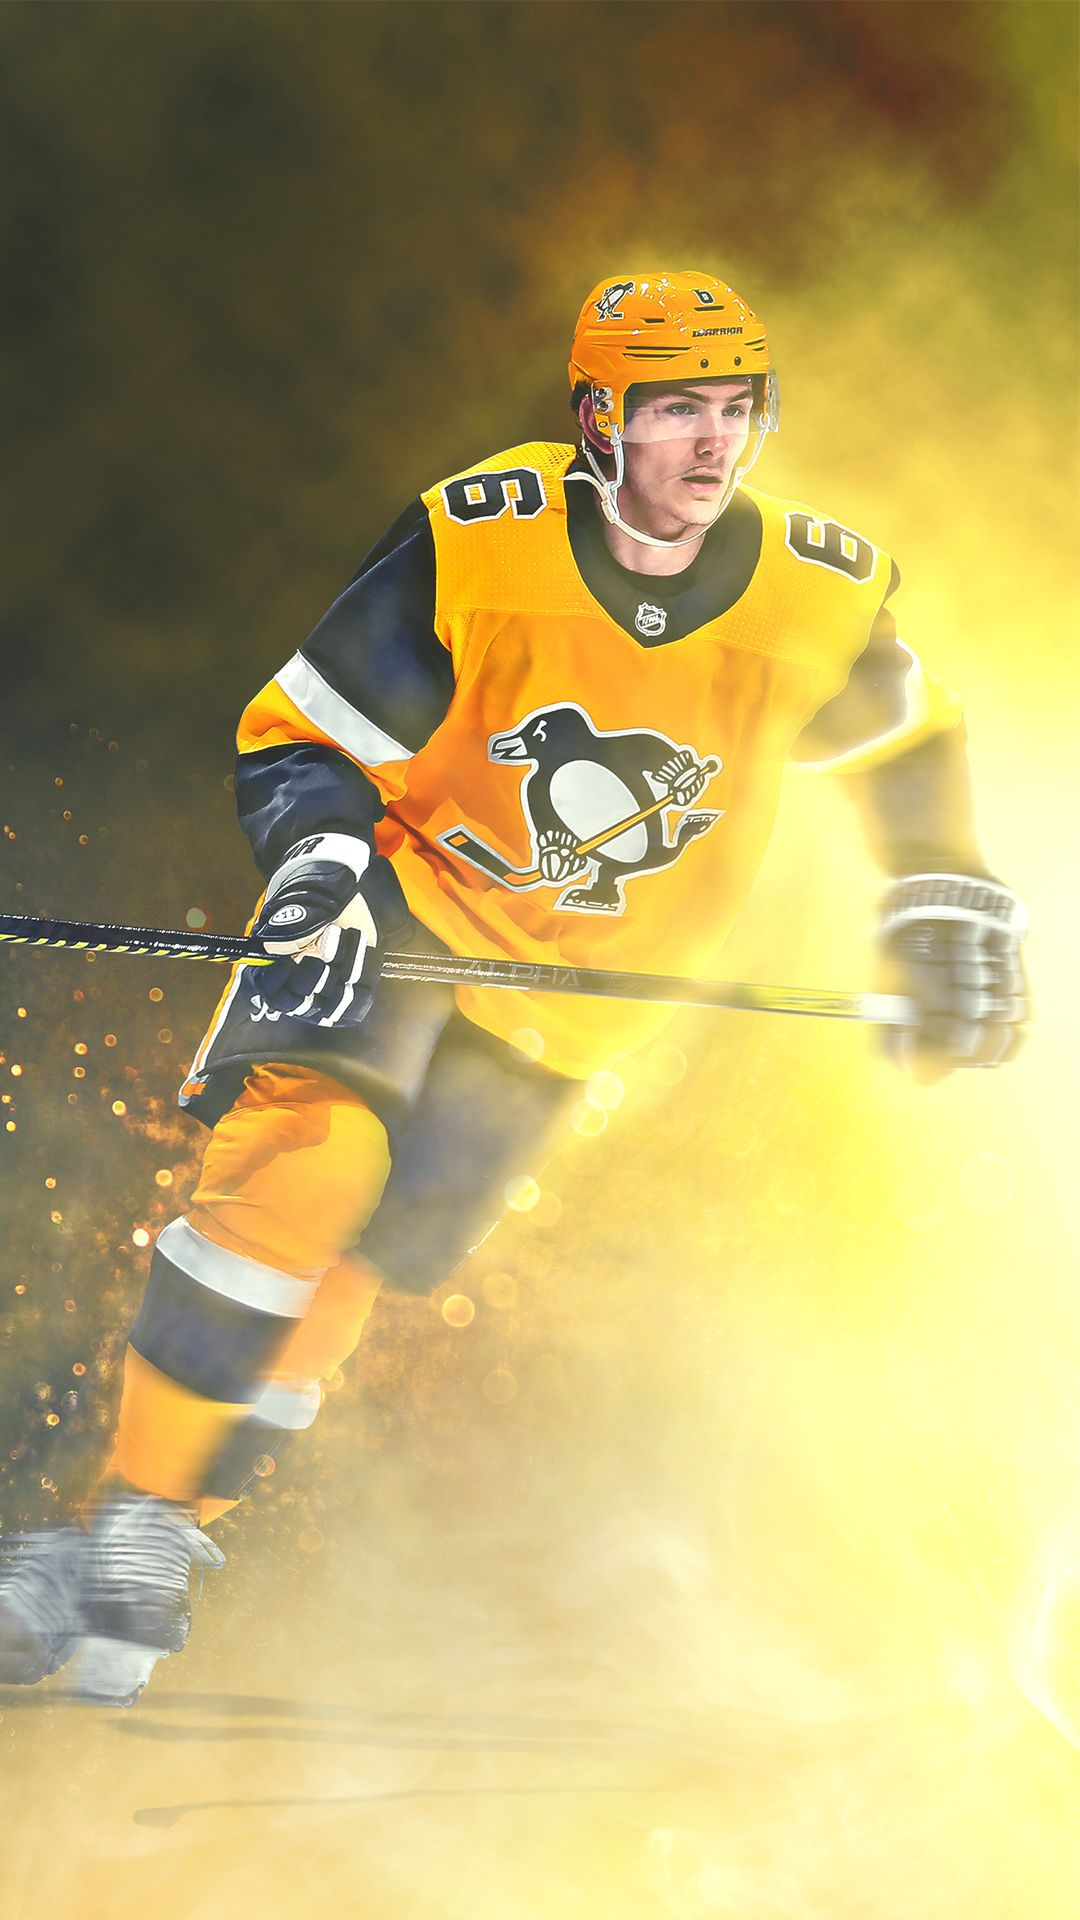 Welcome To Nhl Com The Official Site Of The National Hockey League In 2020 National Hockey League Pittsburgh Penguins League